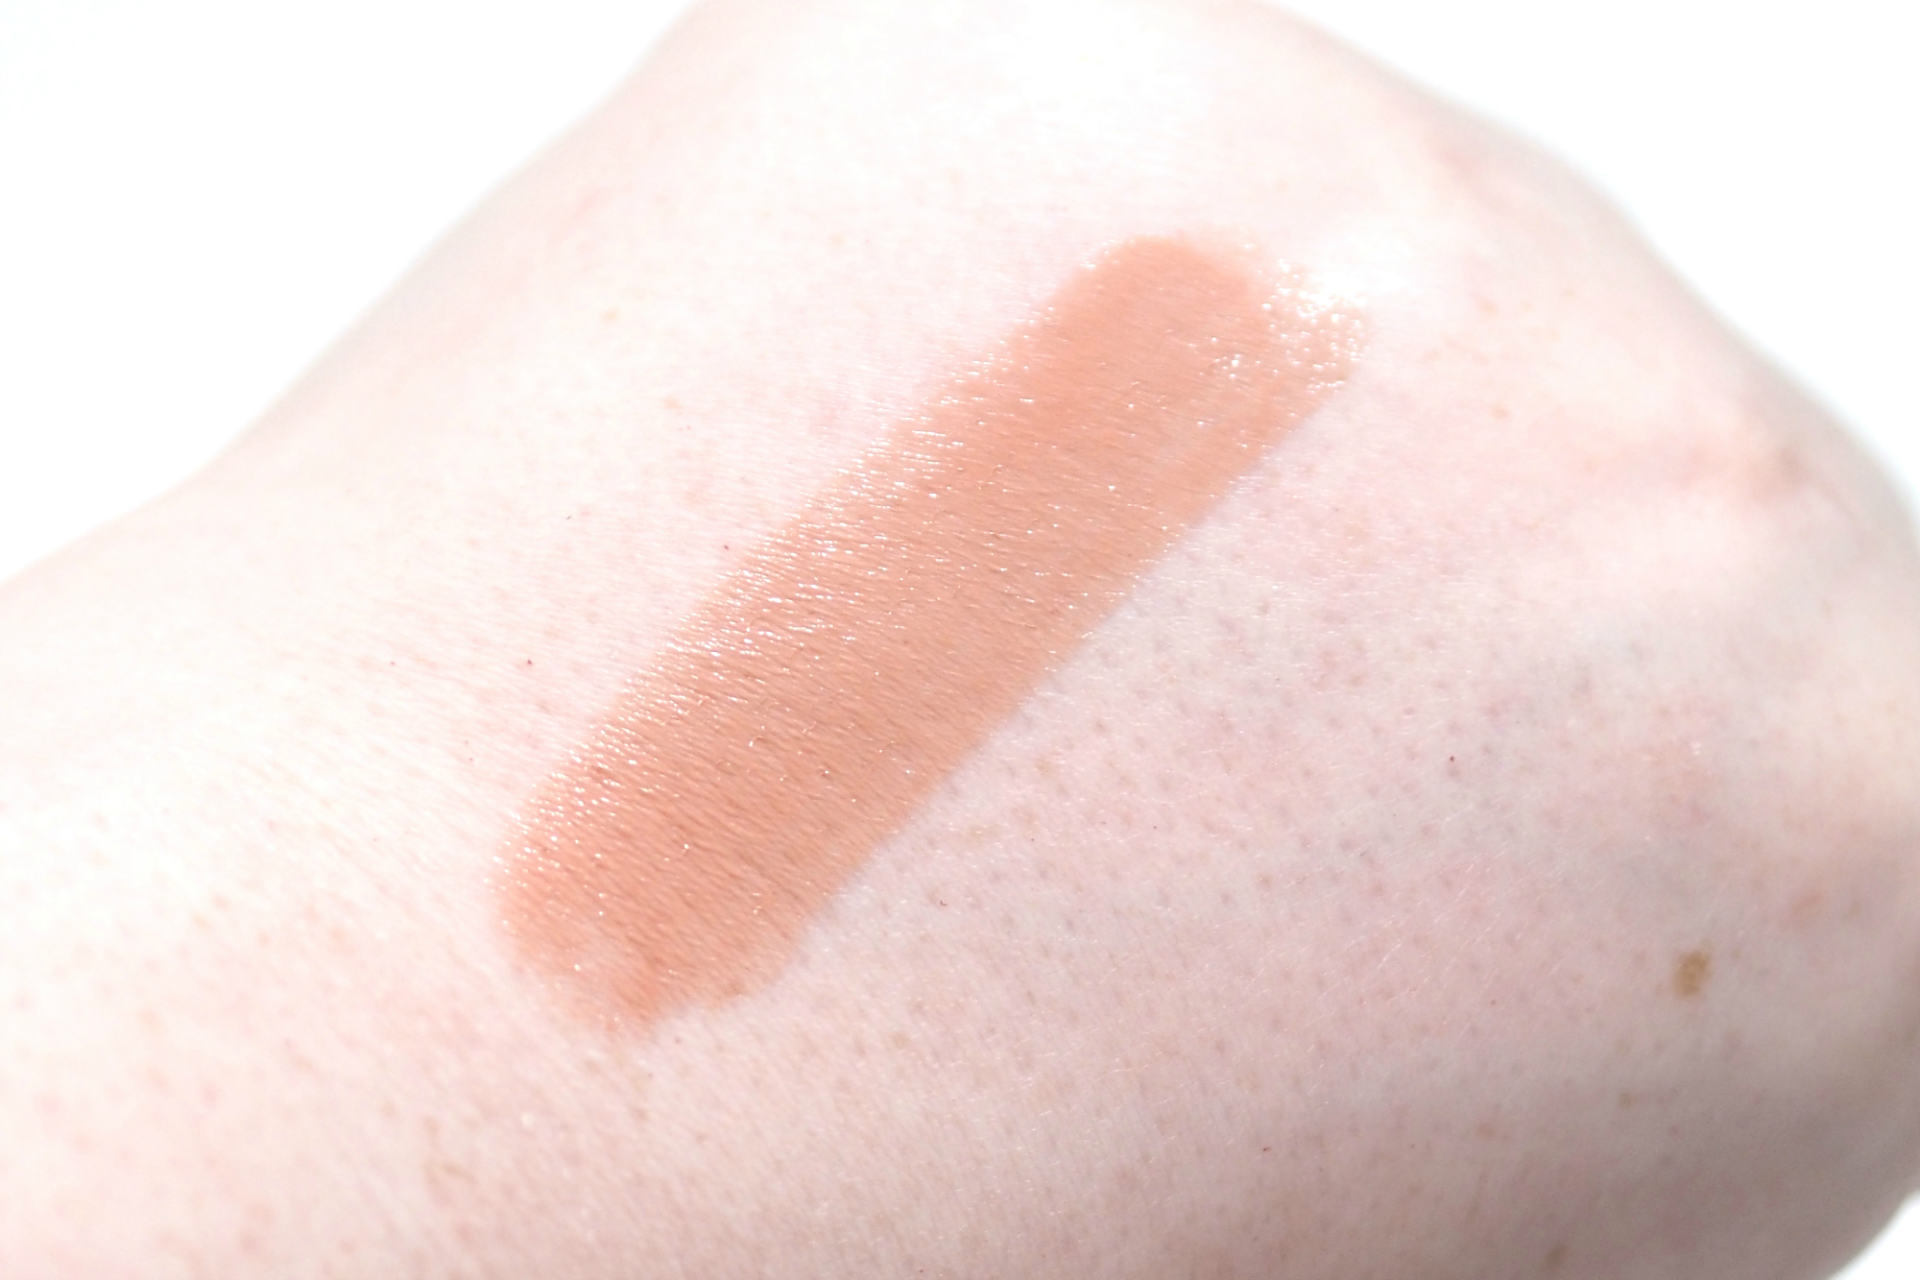 Maybelline Color Sensational Shine Compulsion Lipstick in Baddest Beige 50 Review and Swatches